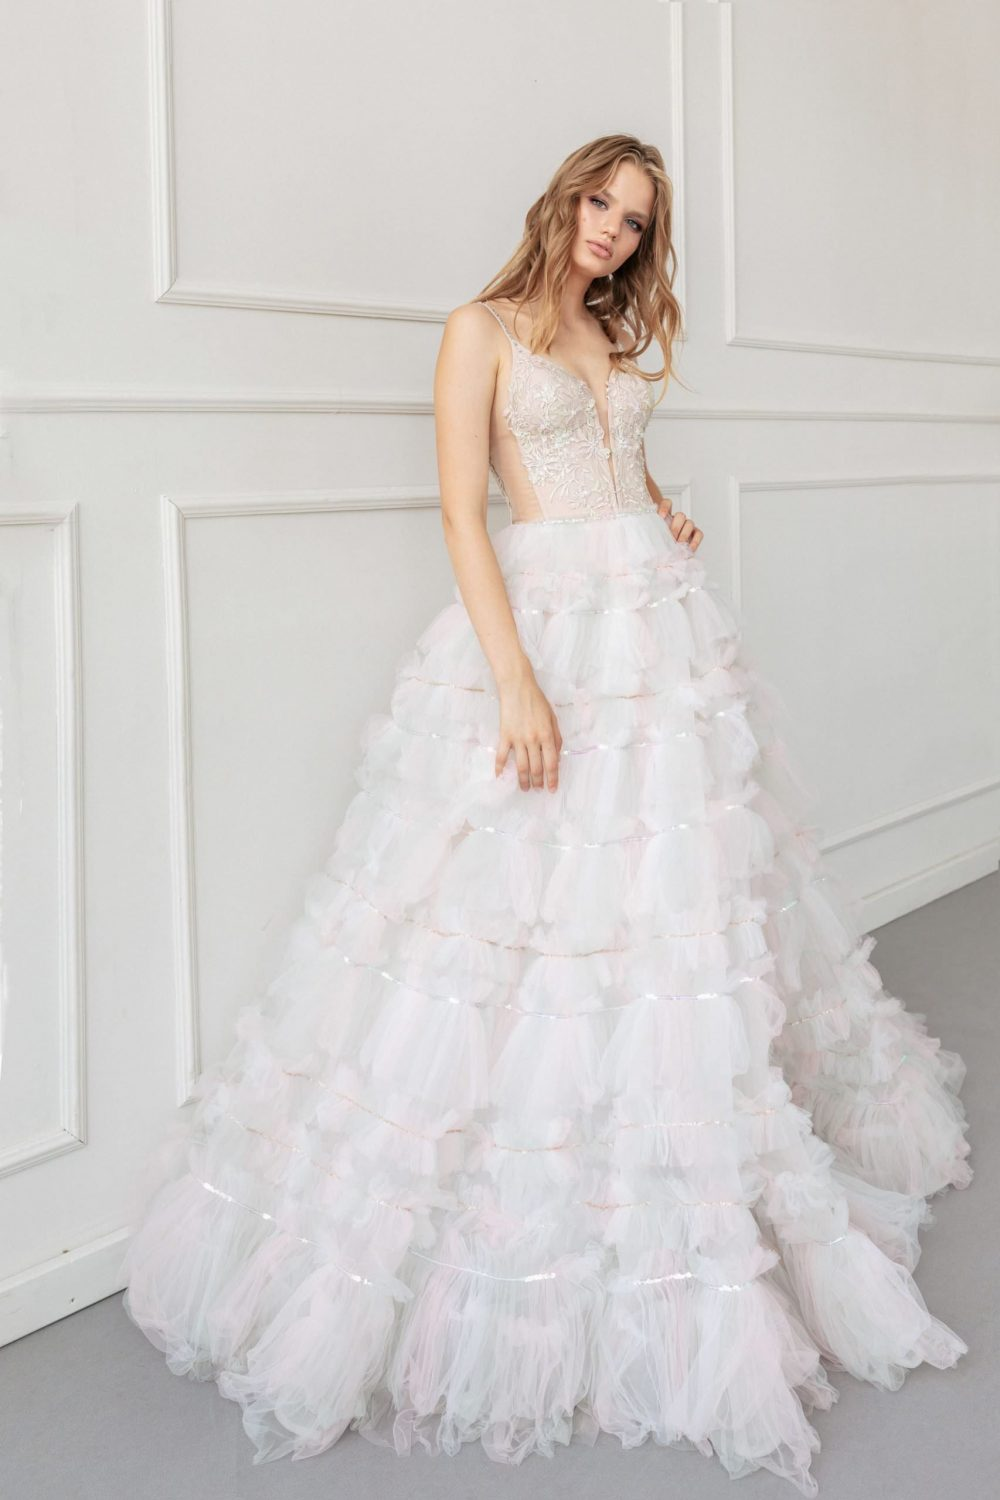 Wedding gown Ange Etoiles Katrin